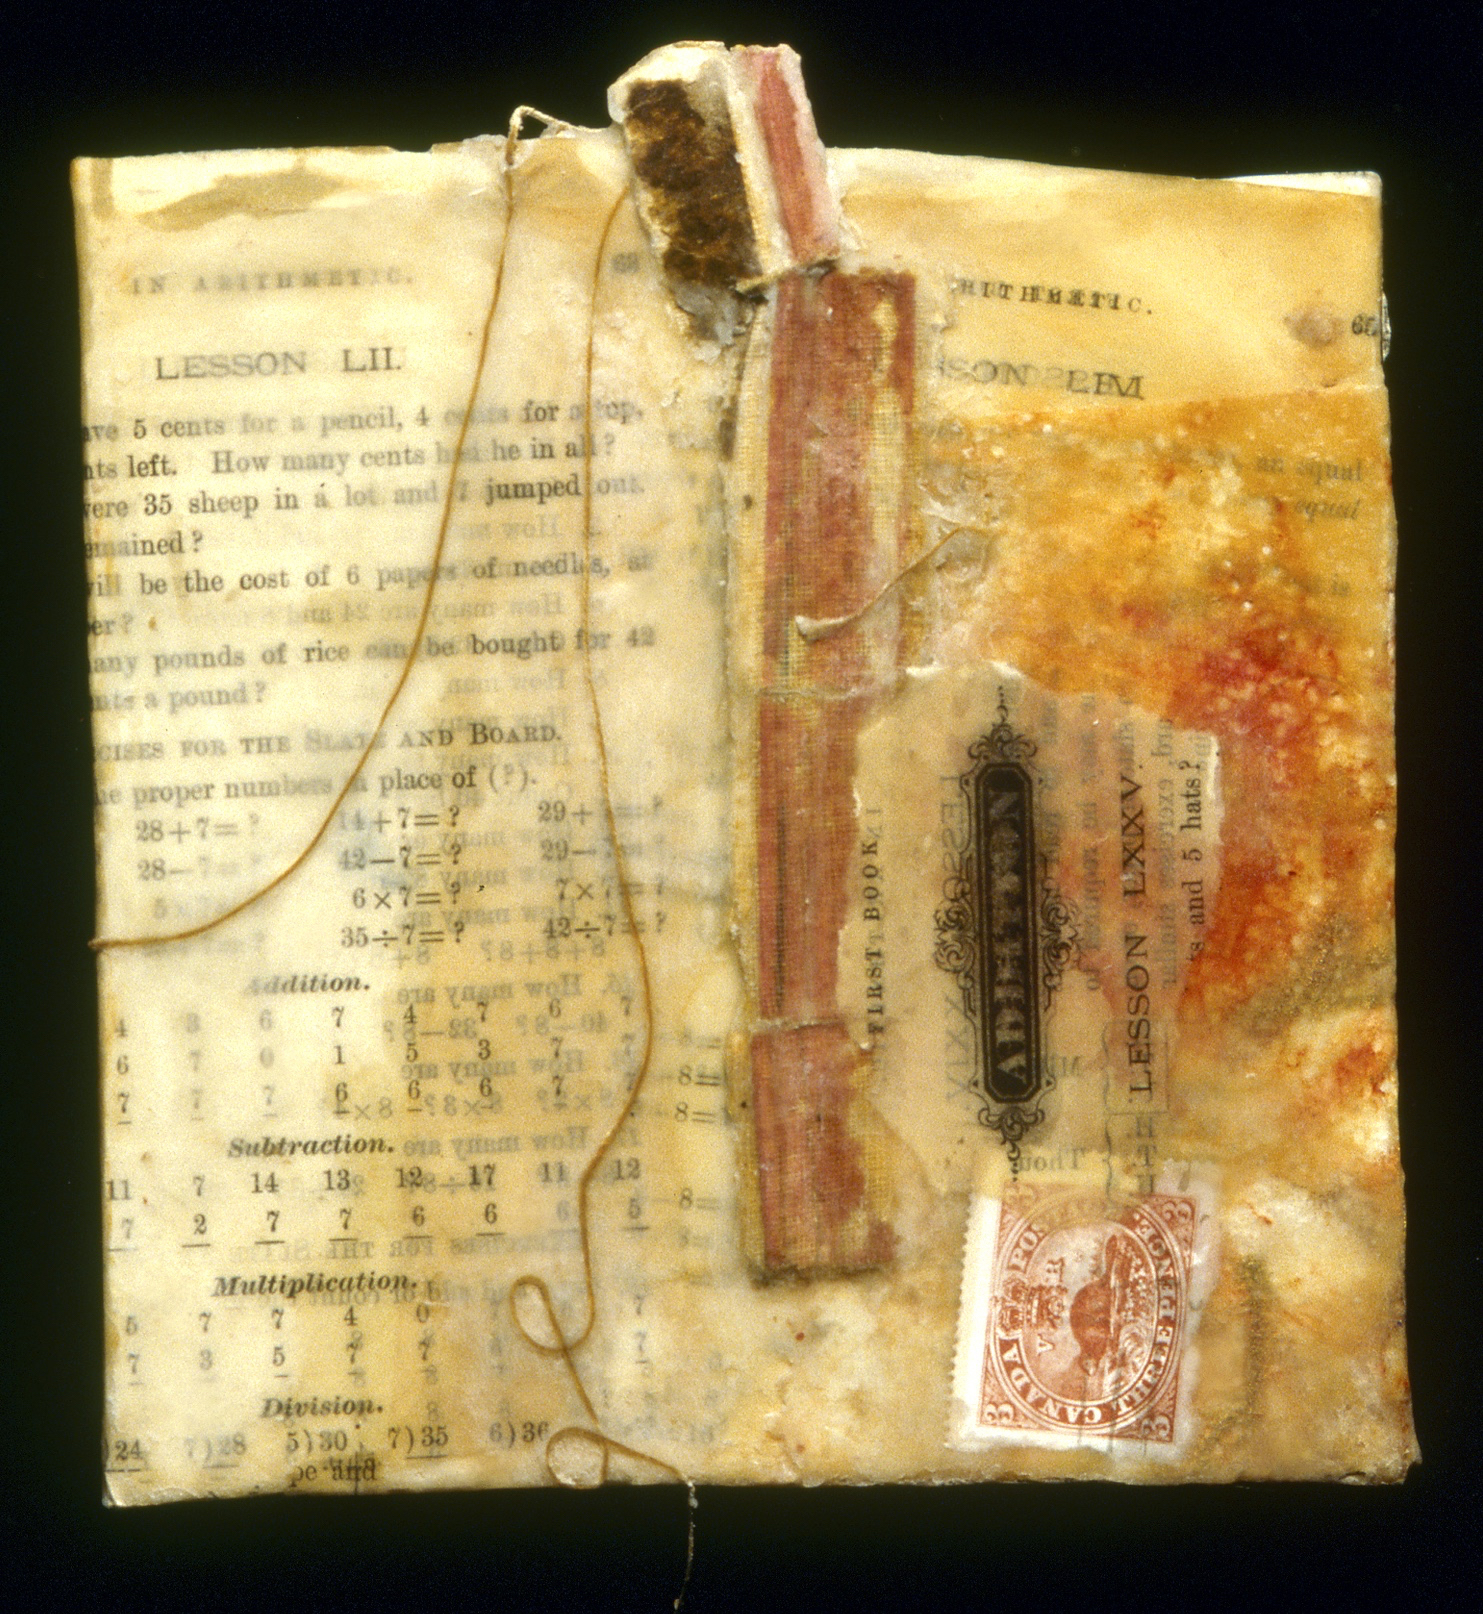 The Math Lesson-SOLD beeswax, book pages & spine